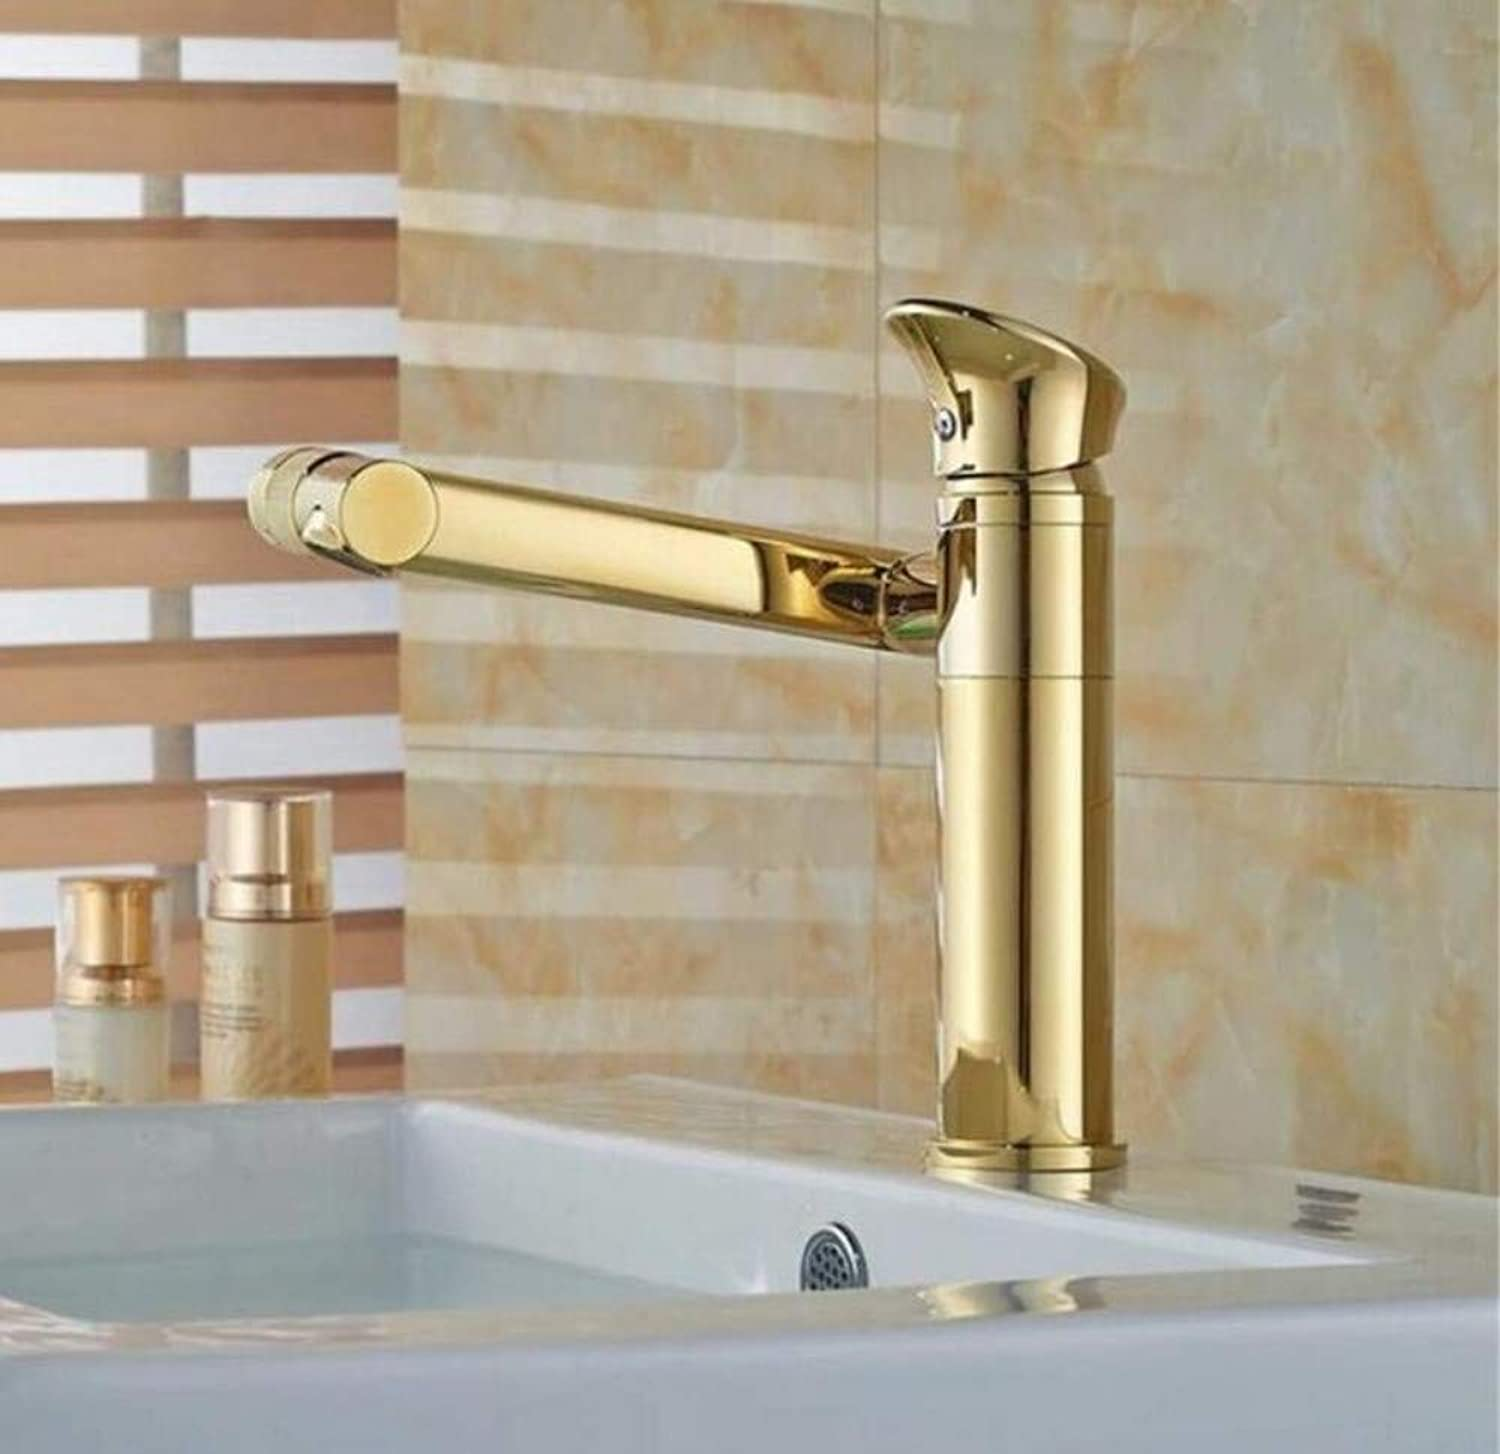 Brass Wall Faucet Chrome Brass Faucet Faucet 180 Degree Bathroom Sink Tap Hot&Cold Tap One Hole